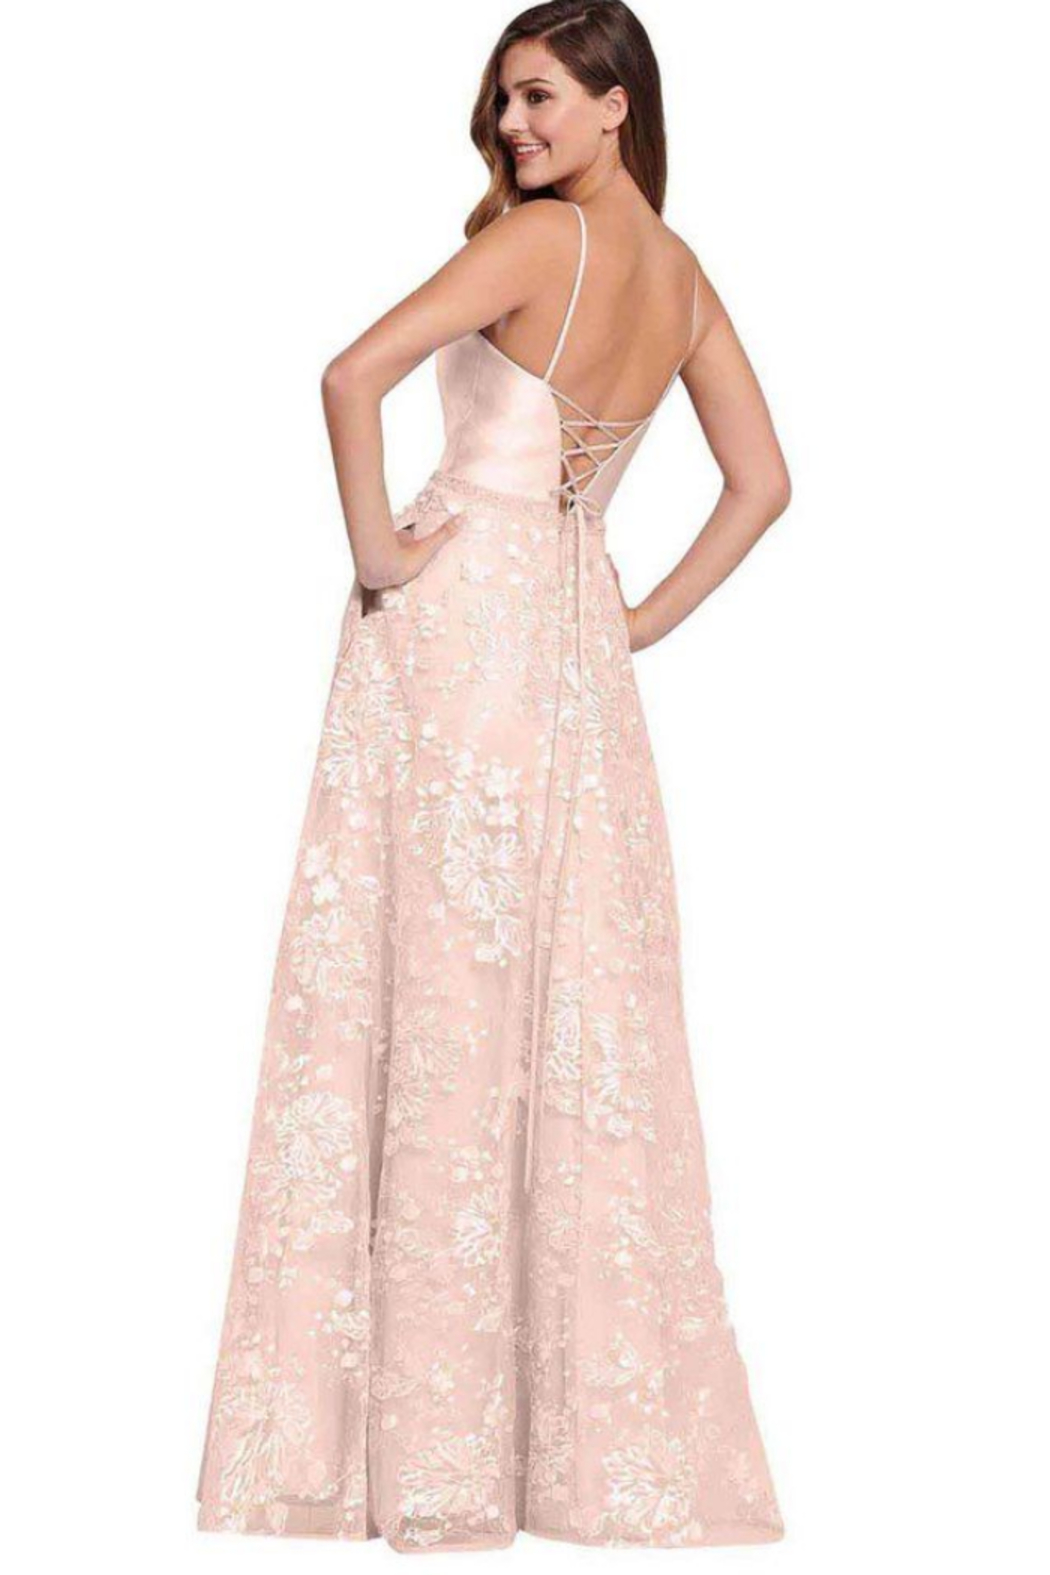 Ellie Wilde ew119037 - Long Lace Prom Gown - Main Image